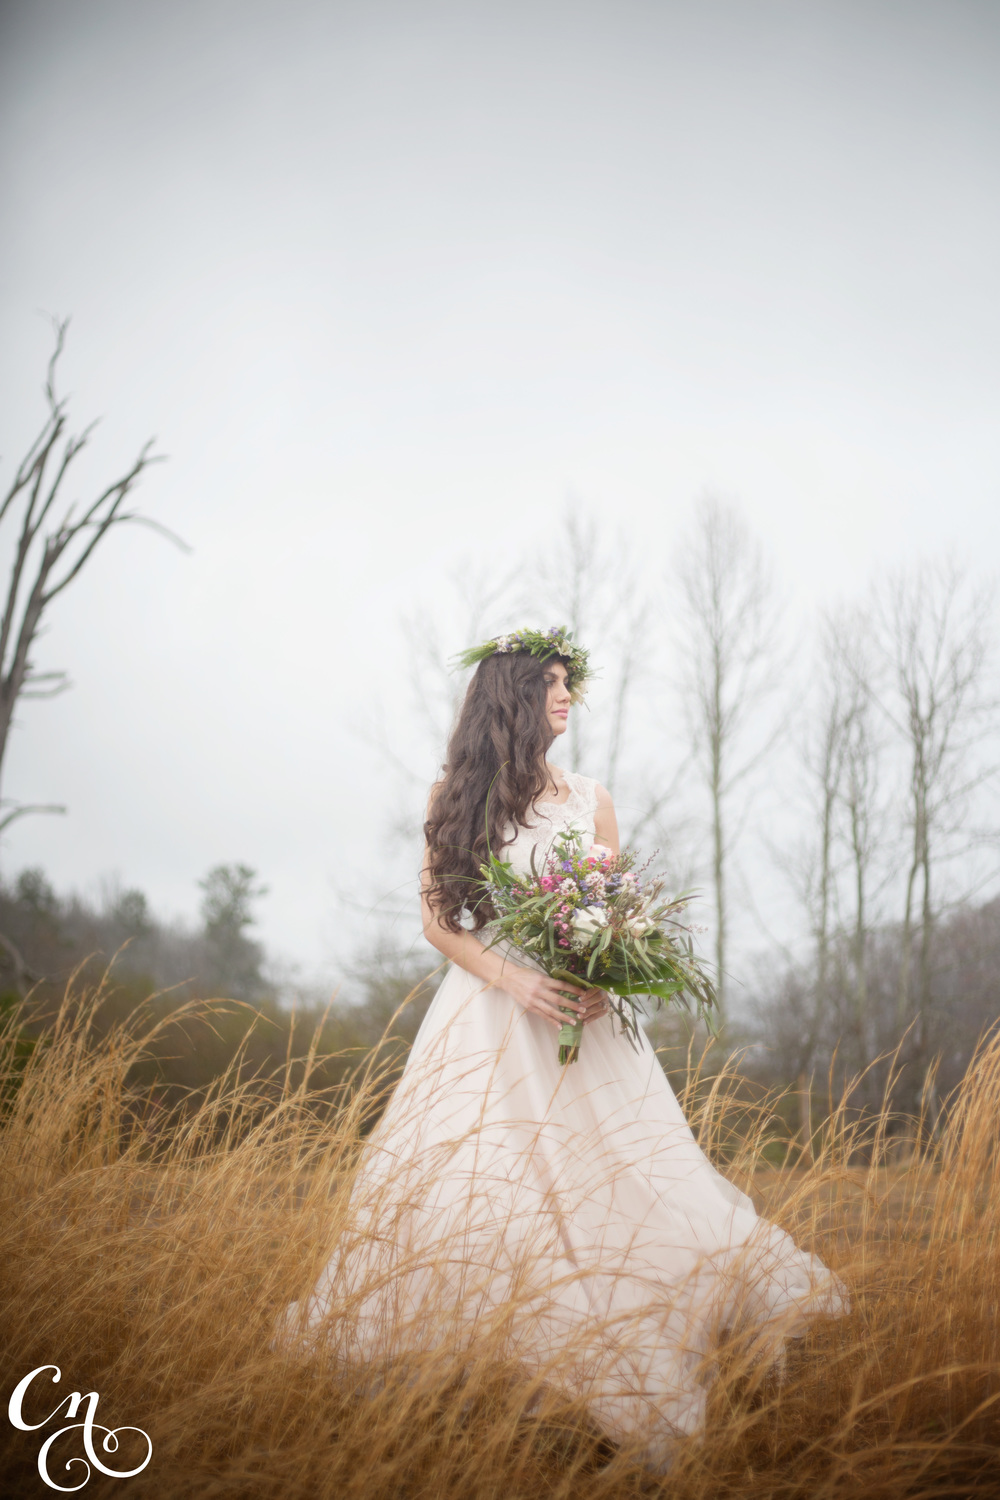 CNP Styled Shoot_5888wm.jpg